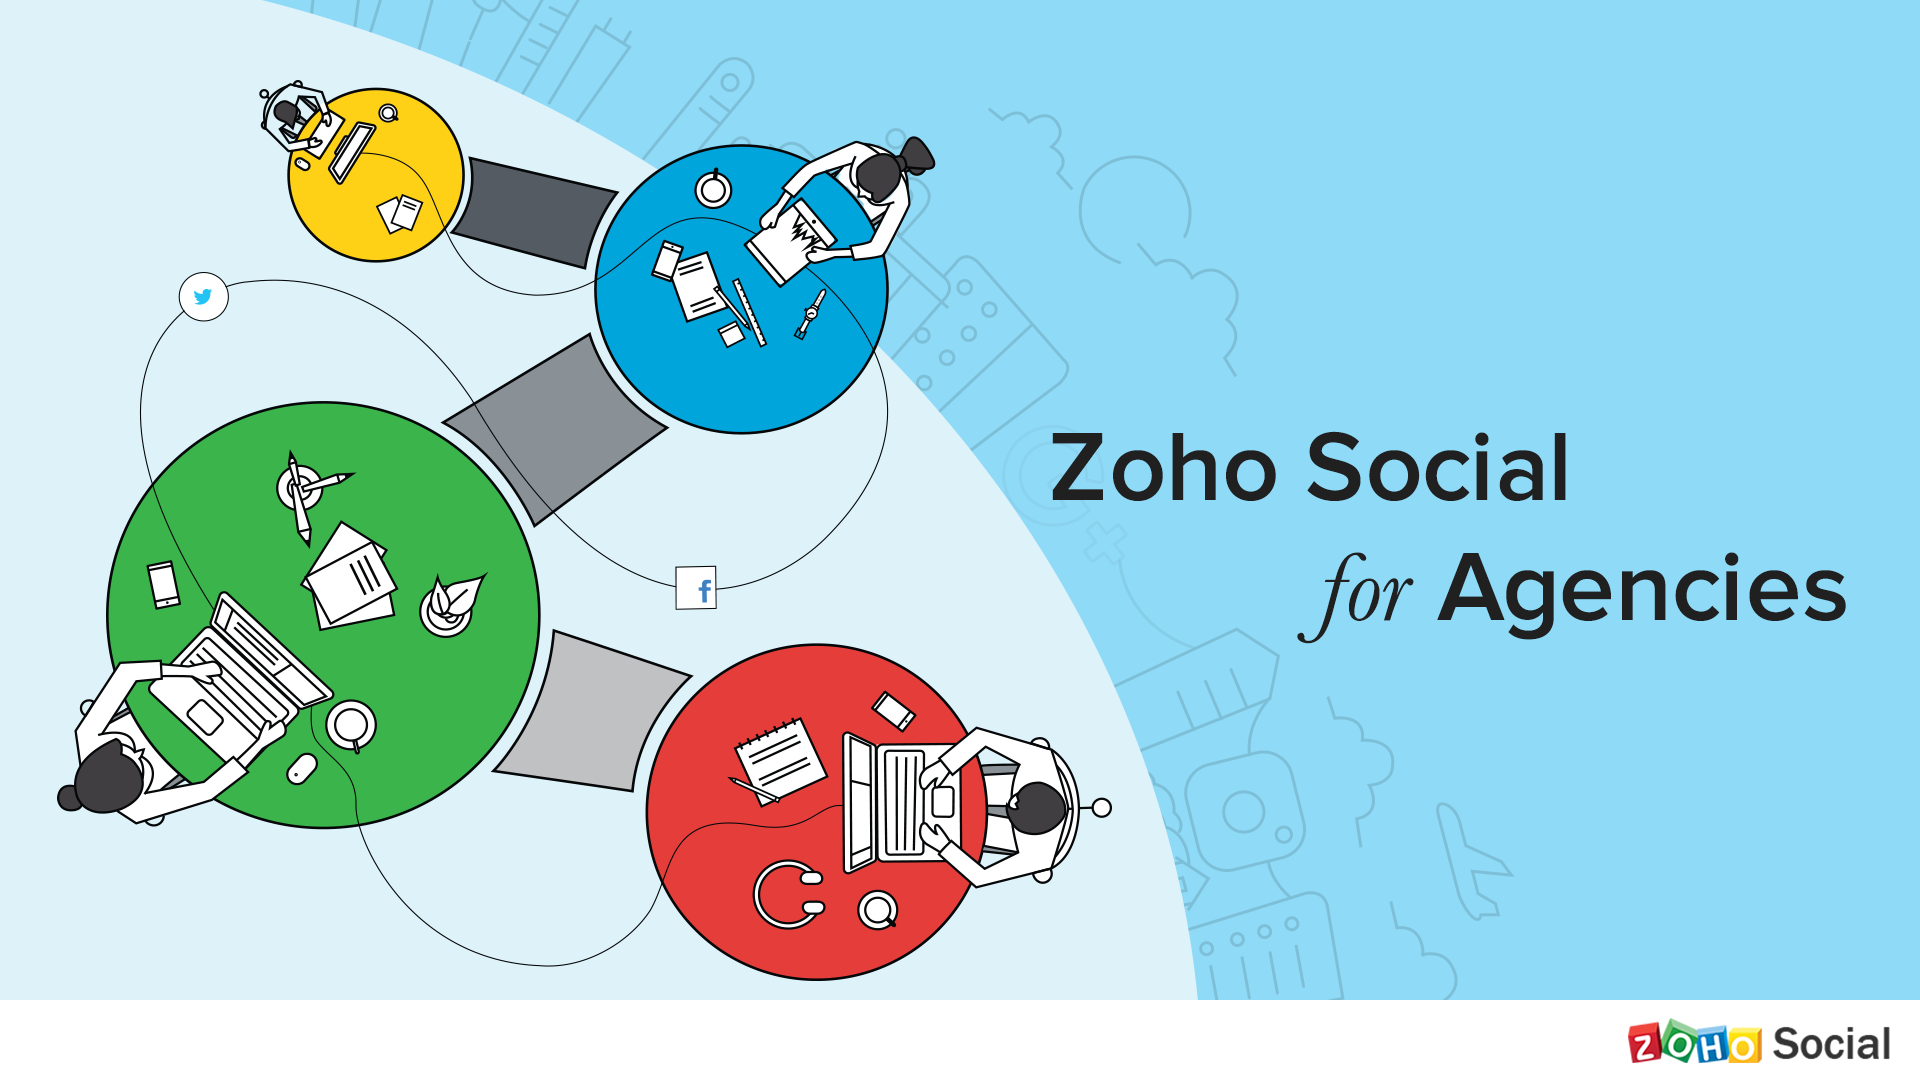 Zoho Social for Agencies